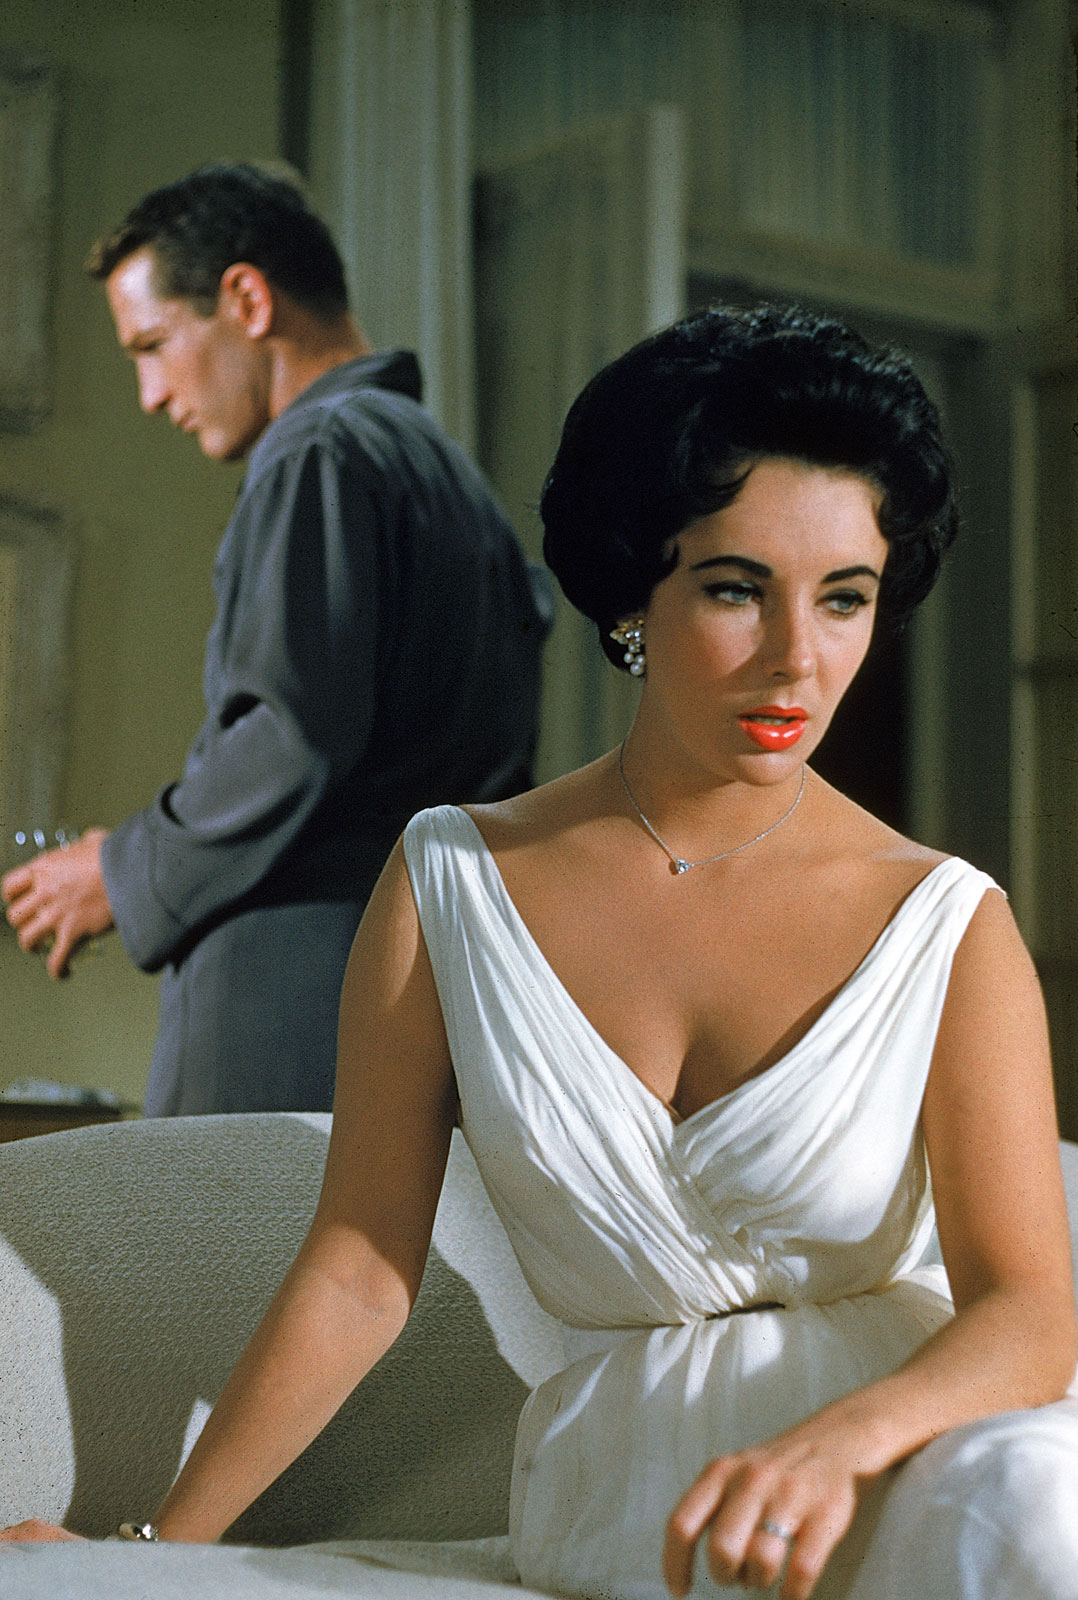 http://1.bp.blogspot.com/-k_UHLgA2qqw/TZ2edmjIwaI/AAAAAAAAAKM/ZYEqcRB8ZsE/s1600/Cat-On-A-Hot-Tin-Roof-Paul-Newman-and-Elizabeth-Taylor.jpg